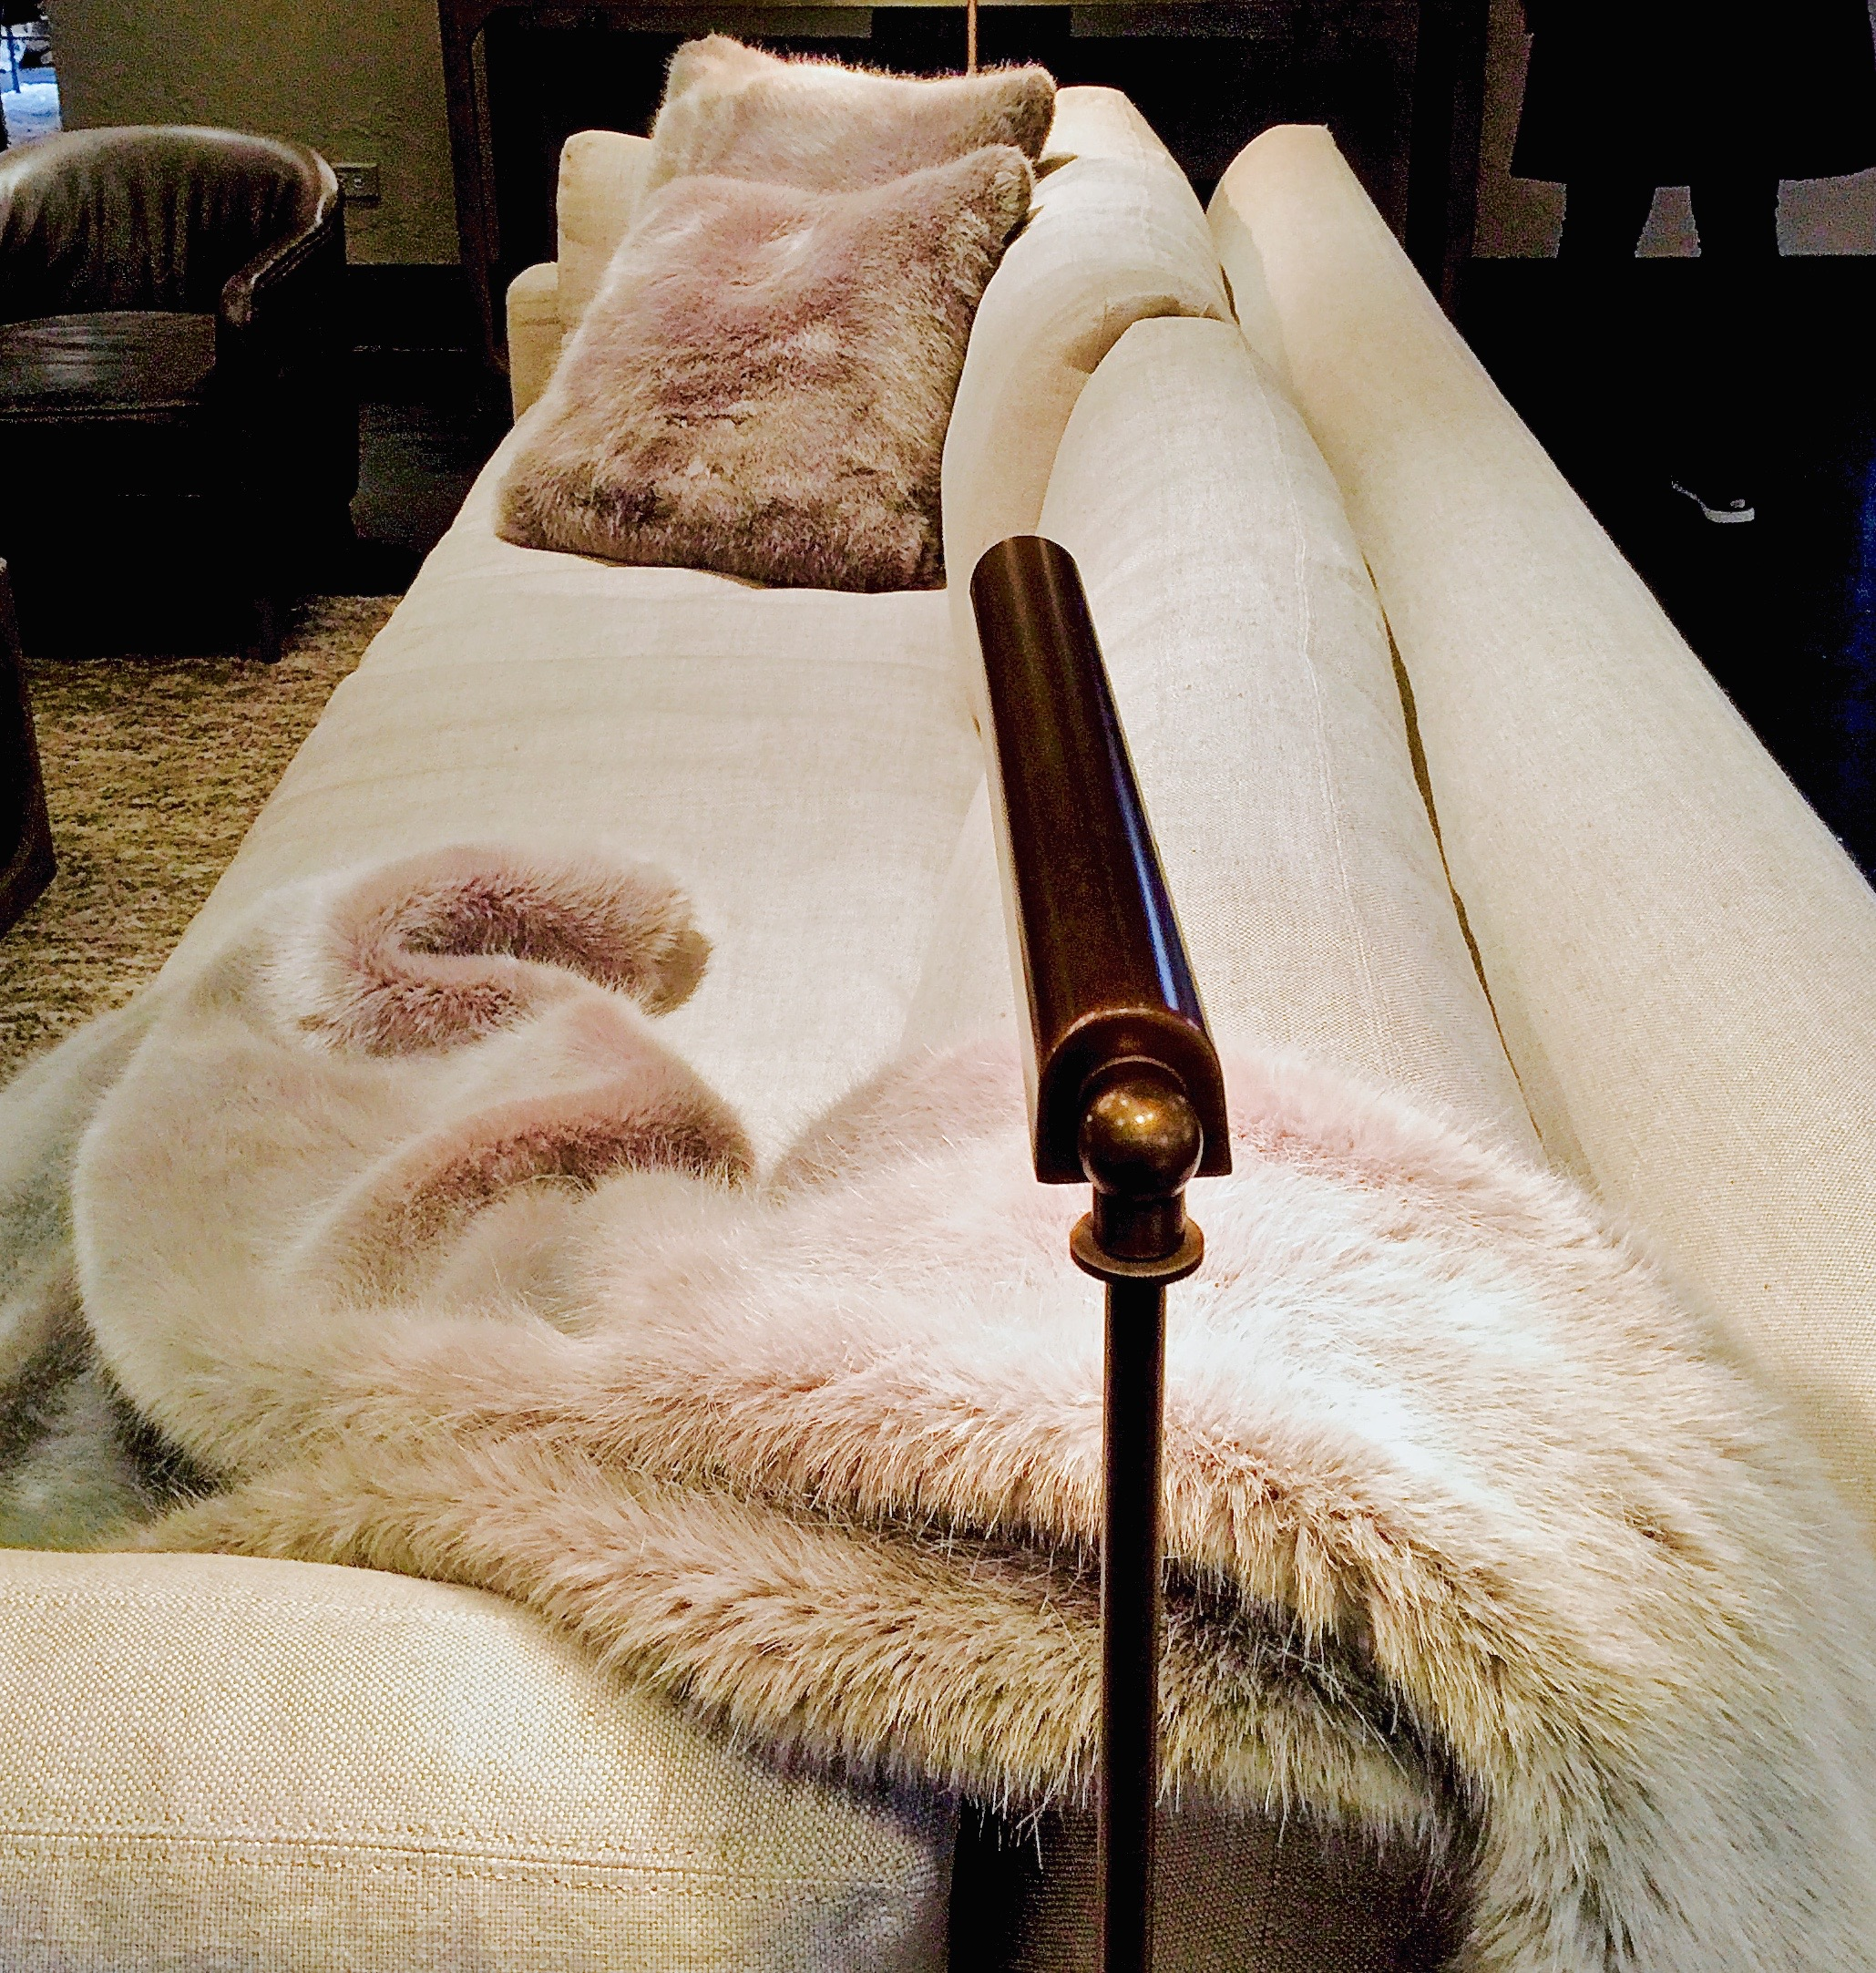 restoration hardware chicago, slipcovered sofa, fur throw and swing arm lamp, the phase three home.jpg